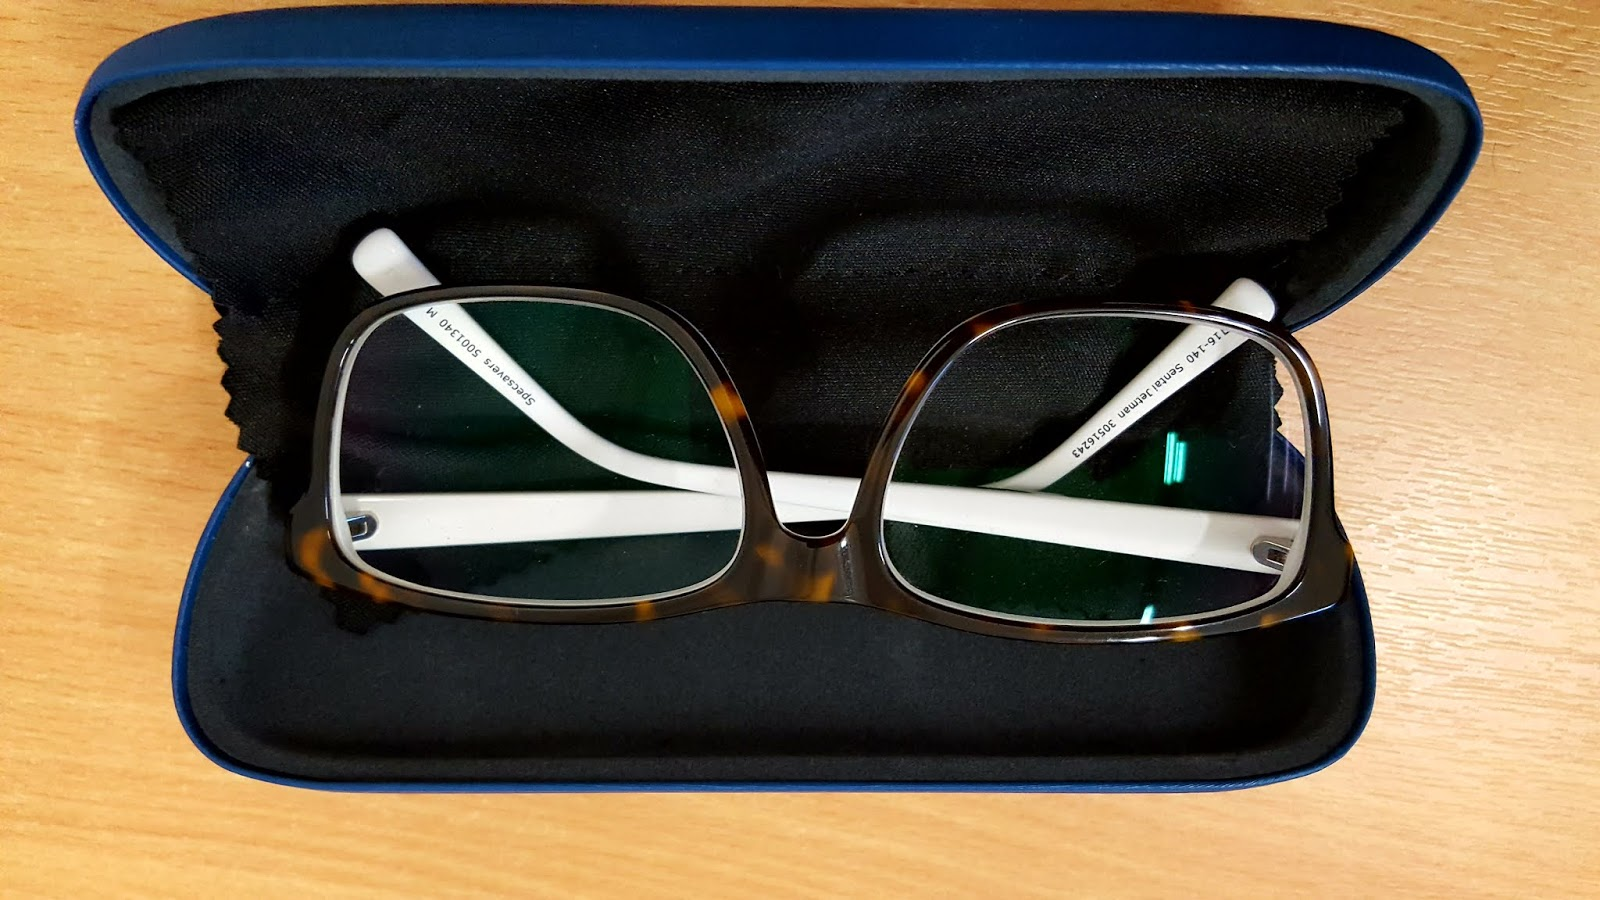 fb42010bd72 On the Road Again   Specsavers - new reading glasses